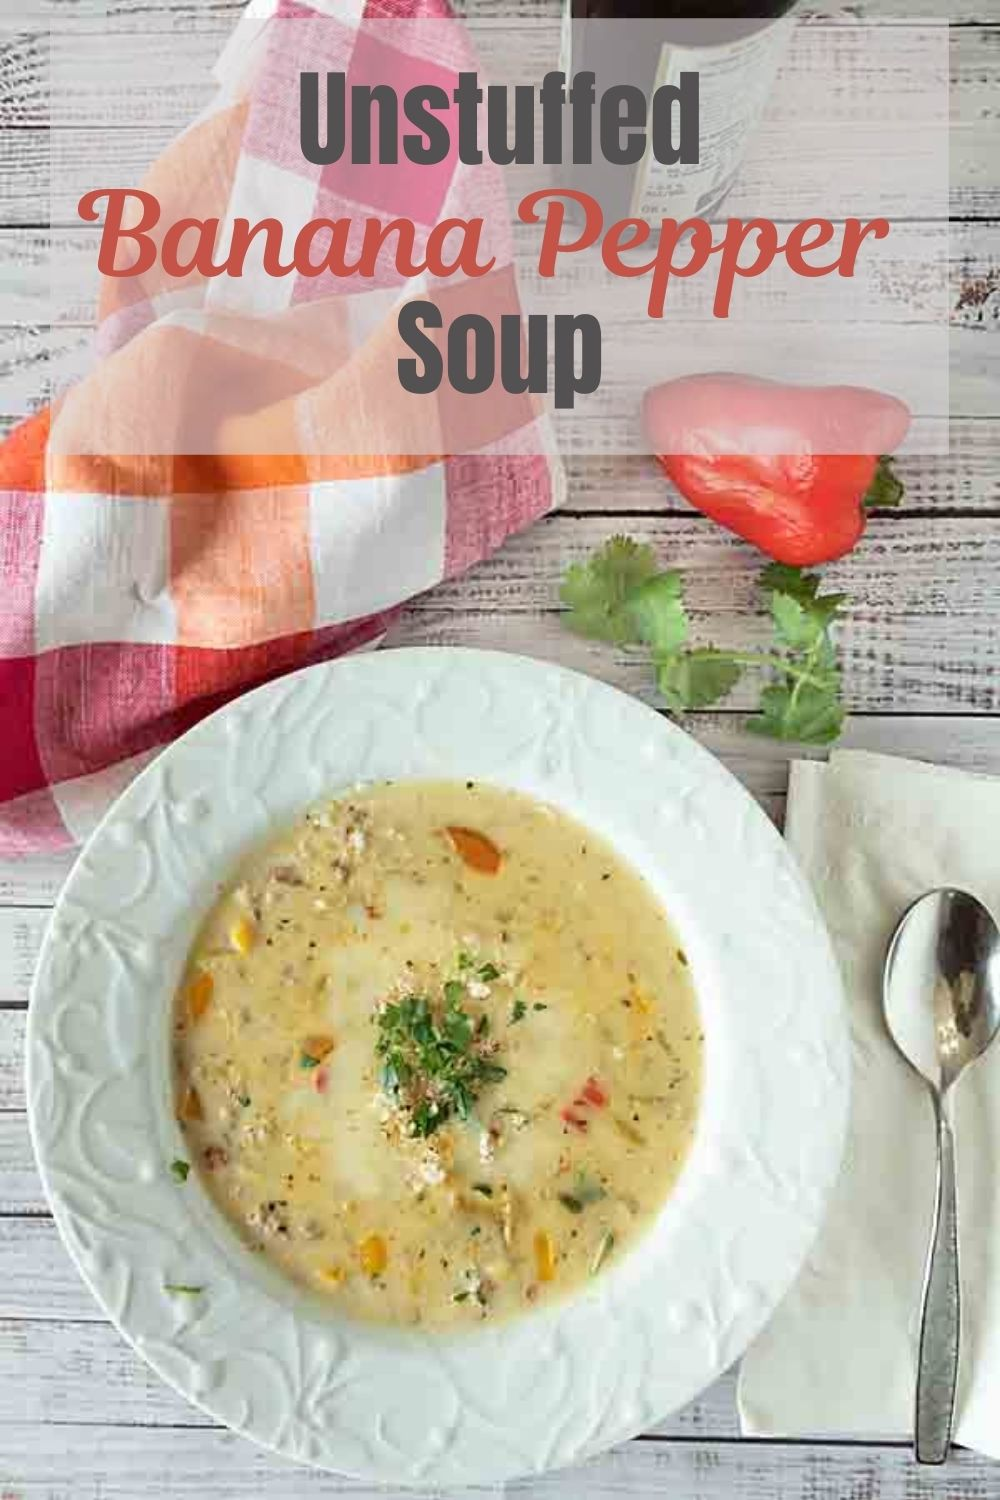 Creamy and cheesy with a hint of heat, unstuffed banana pepper soup makes a perfect cold weather lunch or dinner. Just add bread.